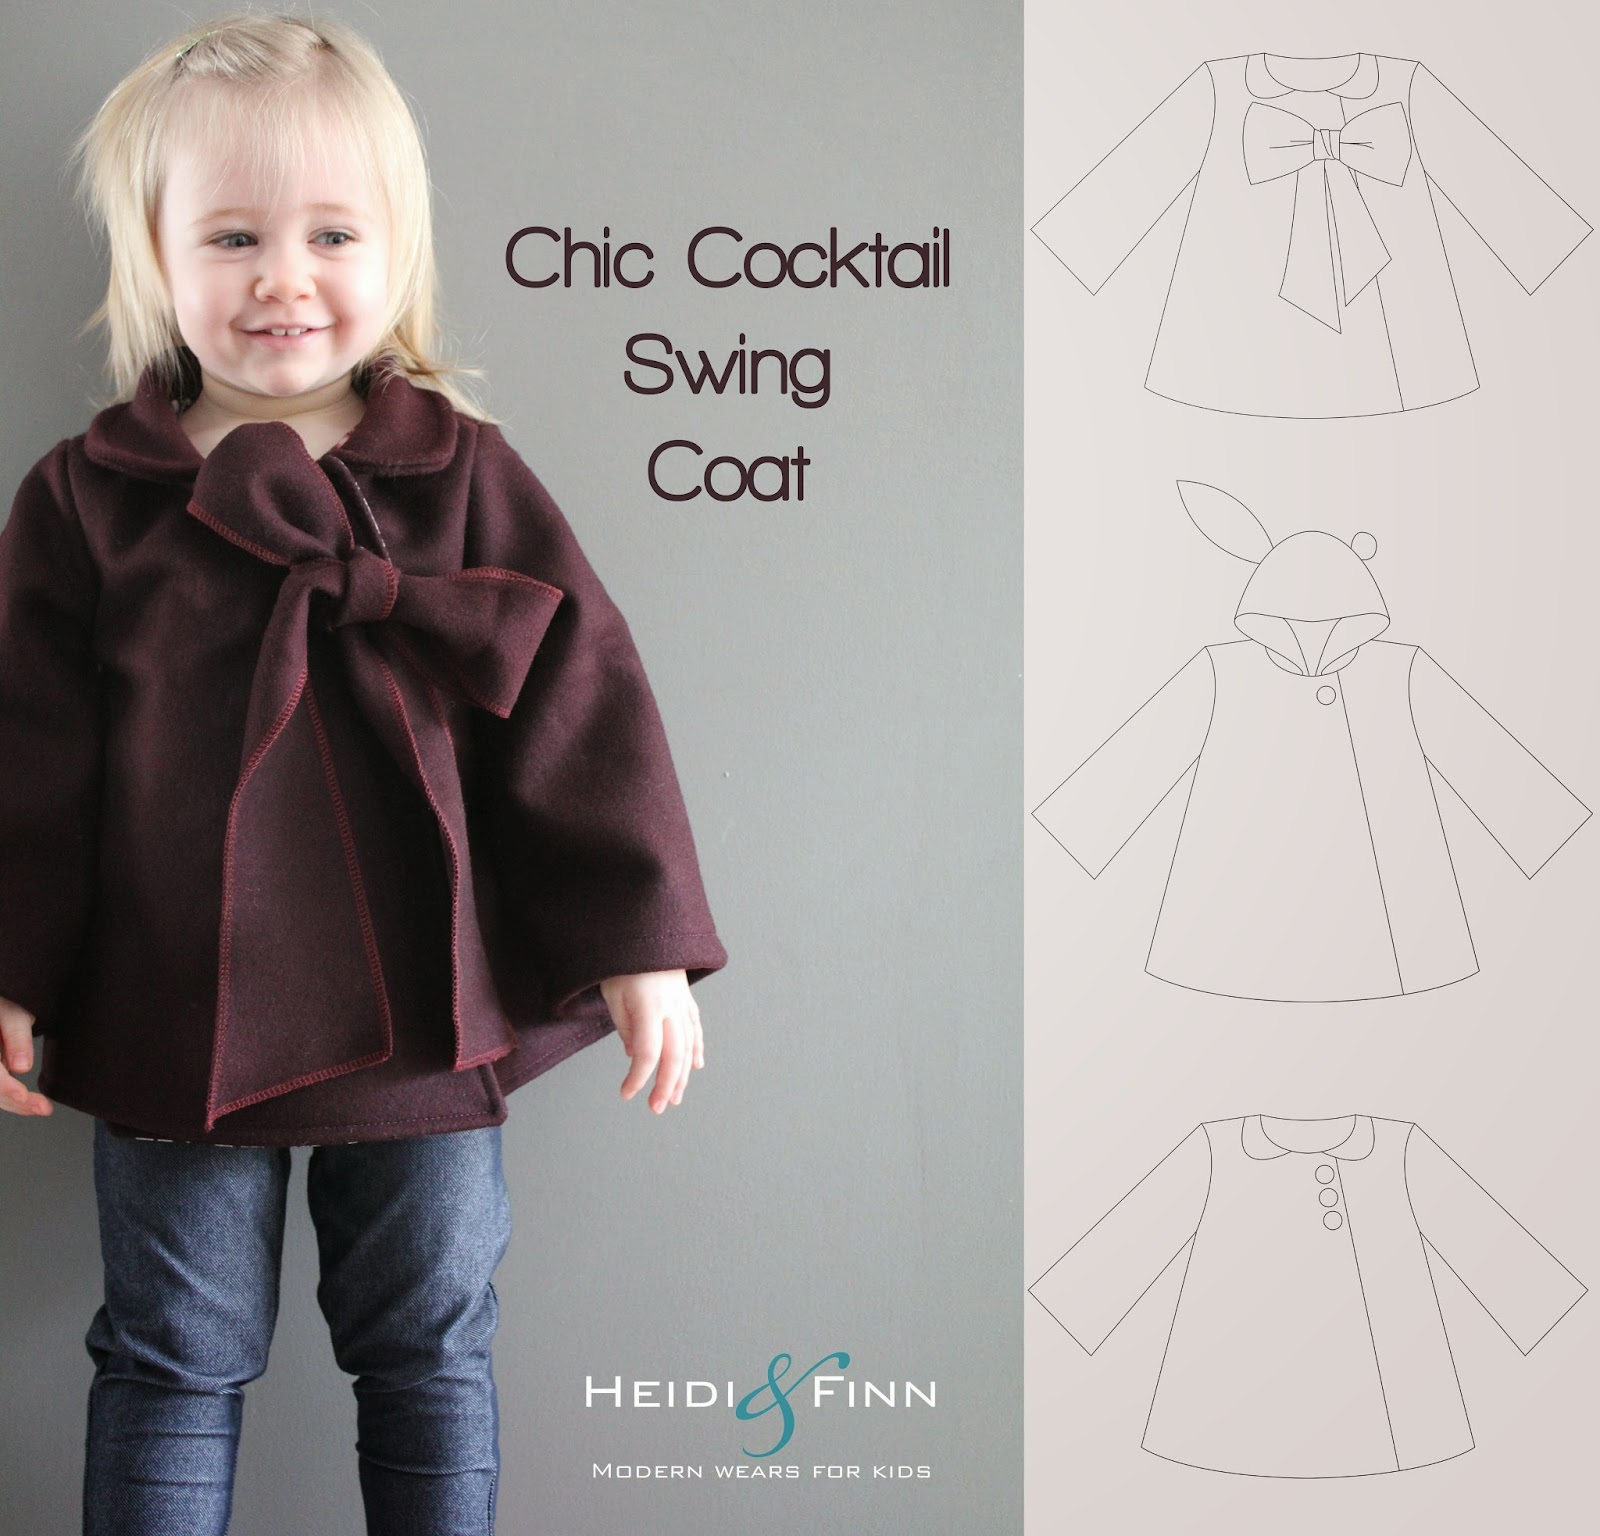 Heidiandfinn modern wears for kids new release the new chic httpcraftsypatternsewingclothing jeuxipadfo Choice Image